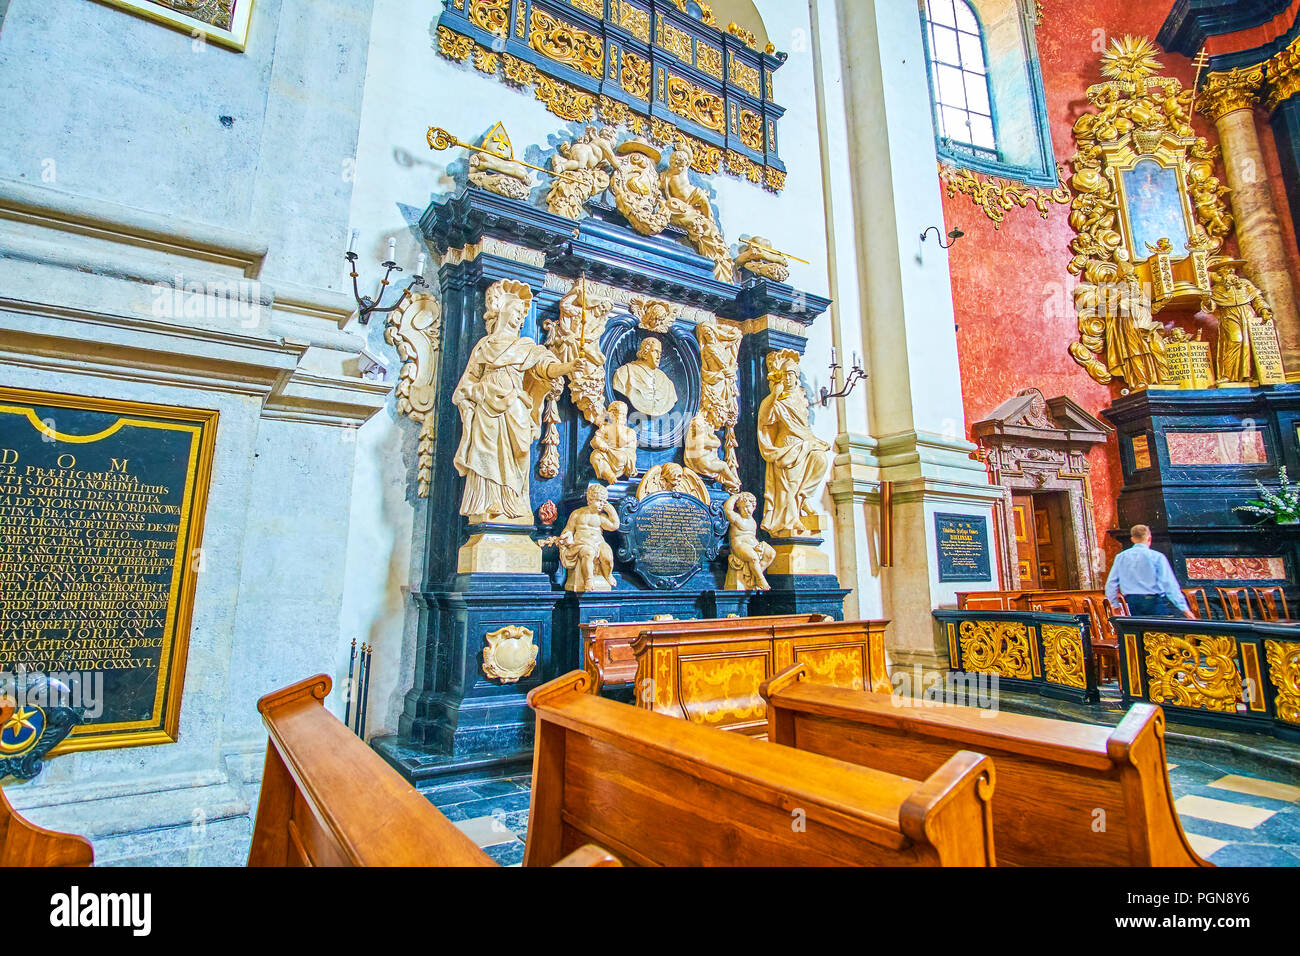 KRAKOW, POLAND - JUNE 11, 2018: Imbedded tombstone of Bishop Andrzej Trzebicki richly decorated with carved stucco sculptures, St Peter and Paul Churc - Stock Image